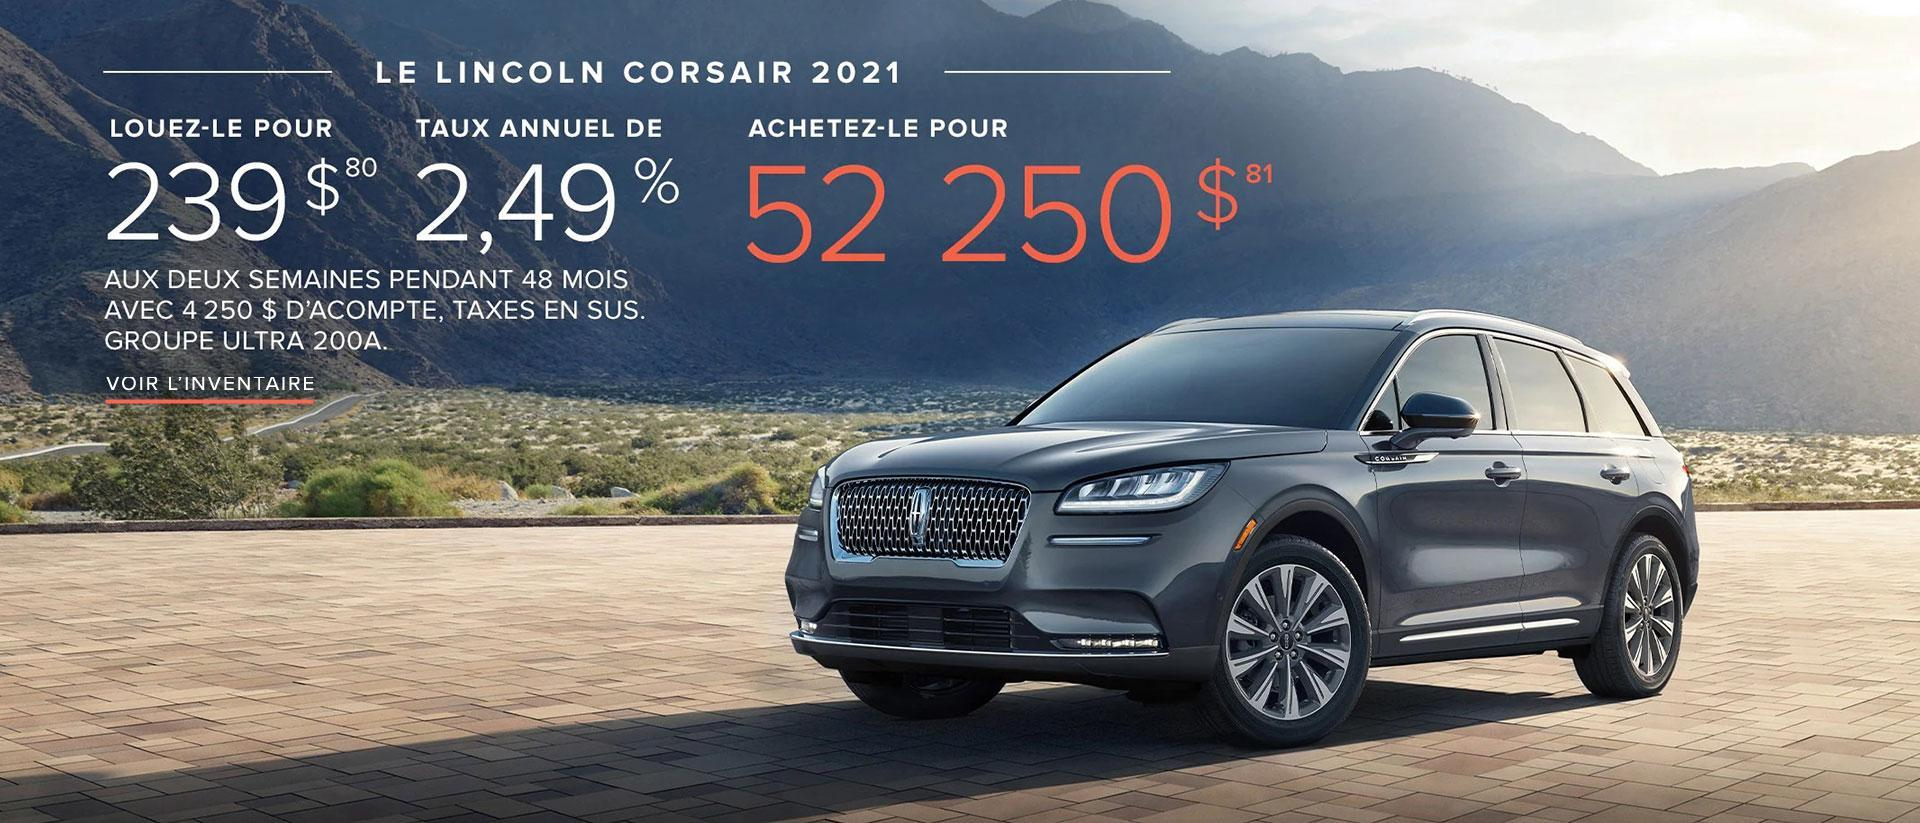 Lincoln Corsair Offer | Lincoln of Canada